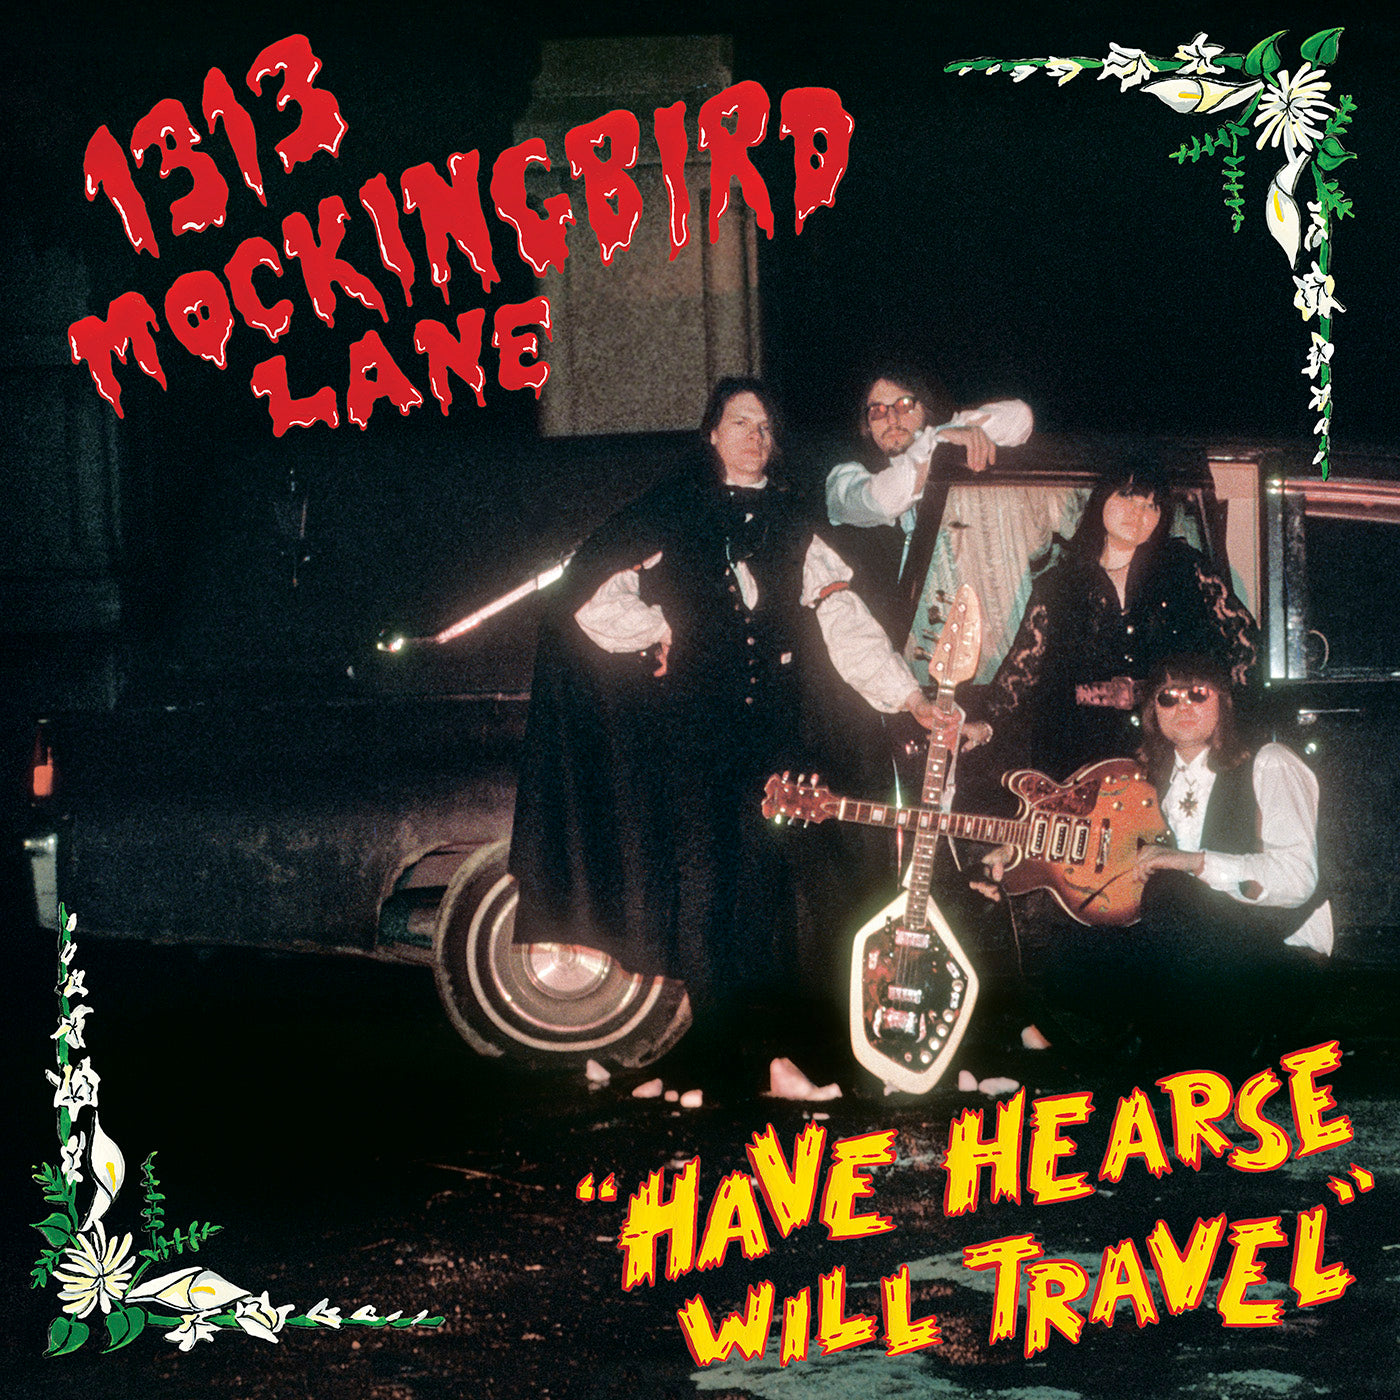 1313 Mockingbird Lane - Have Hearse Will Travel  Vinyl LP